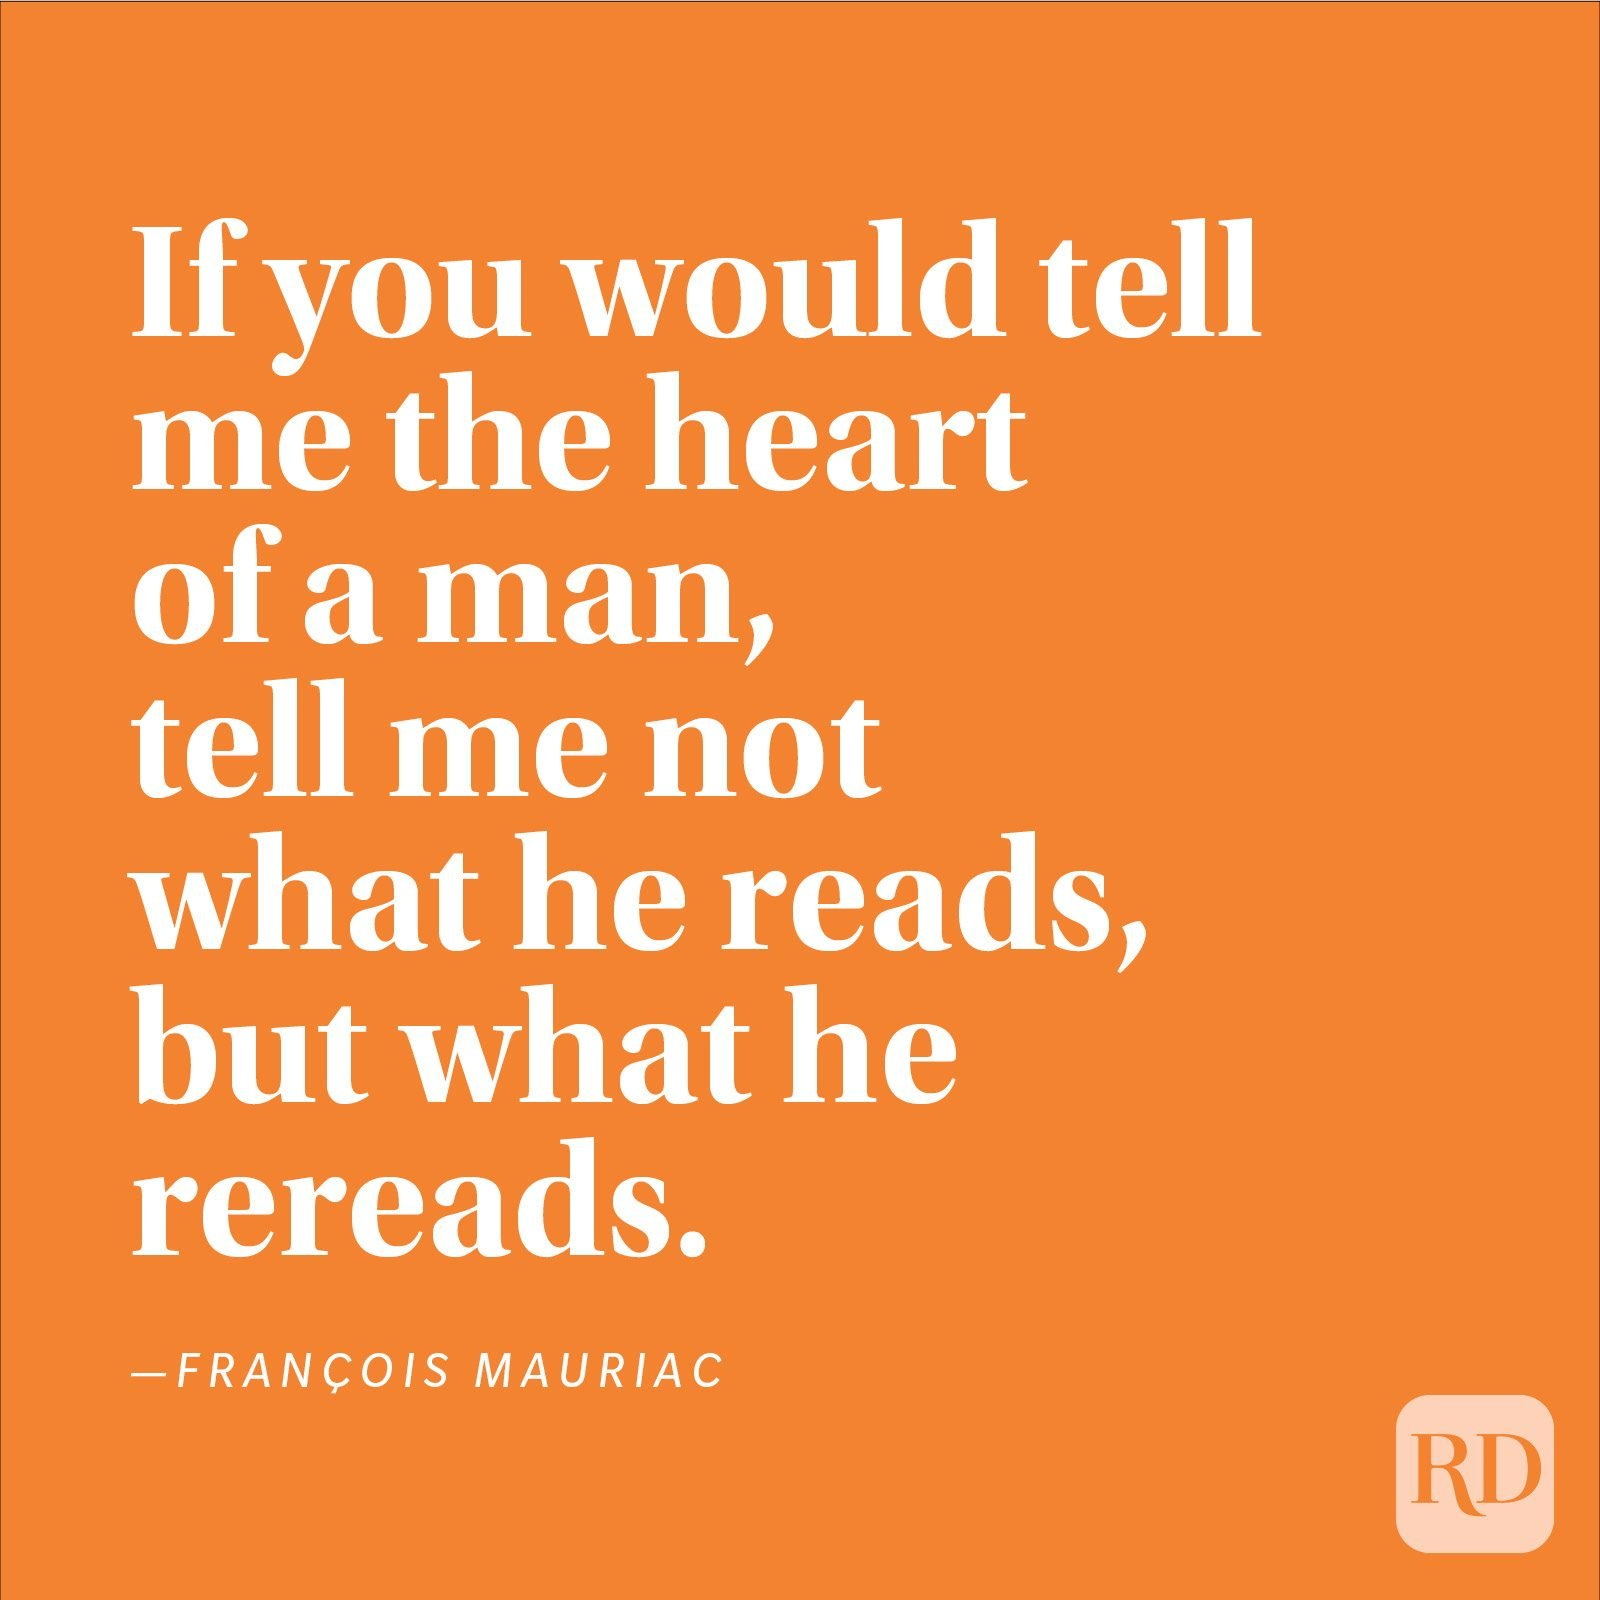 """If you would tell me the heart of a man, tell me not what he reads, but what he rereads."" —François Mauriac"